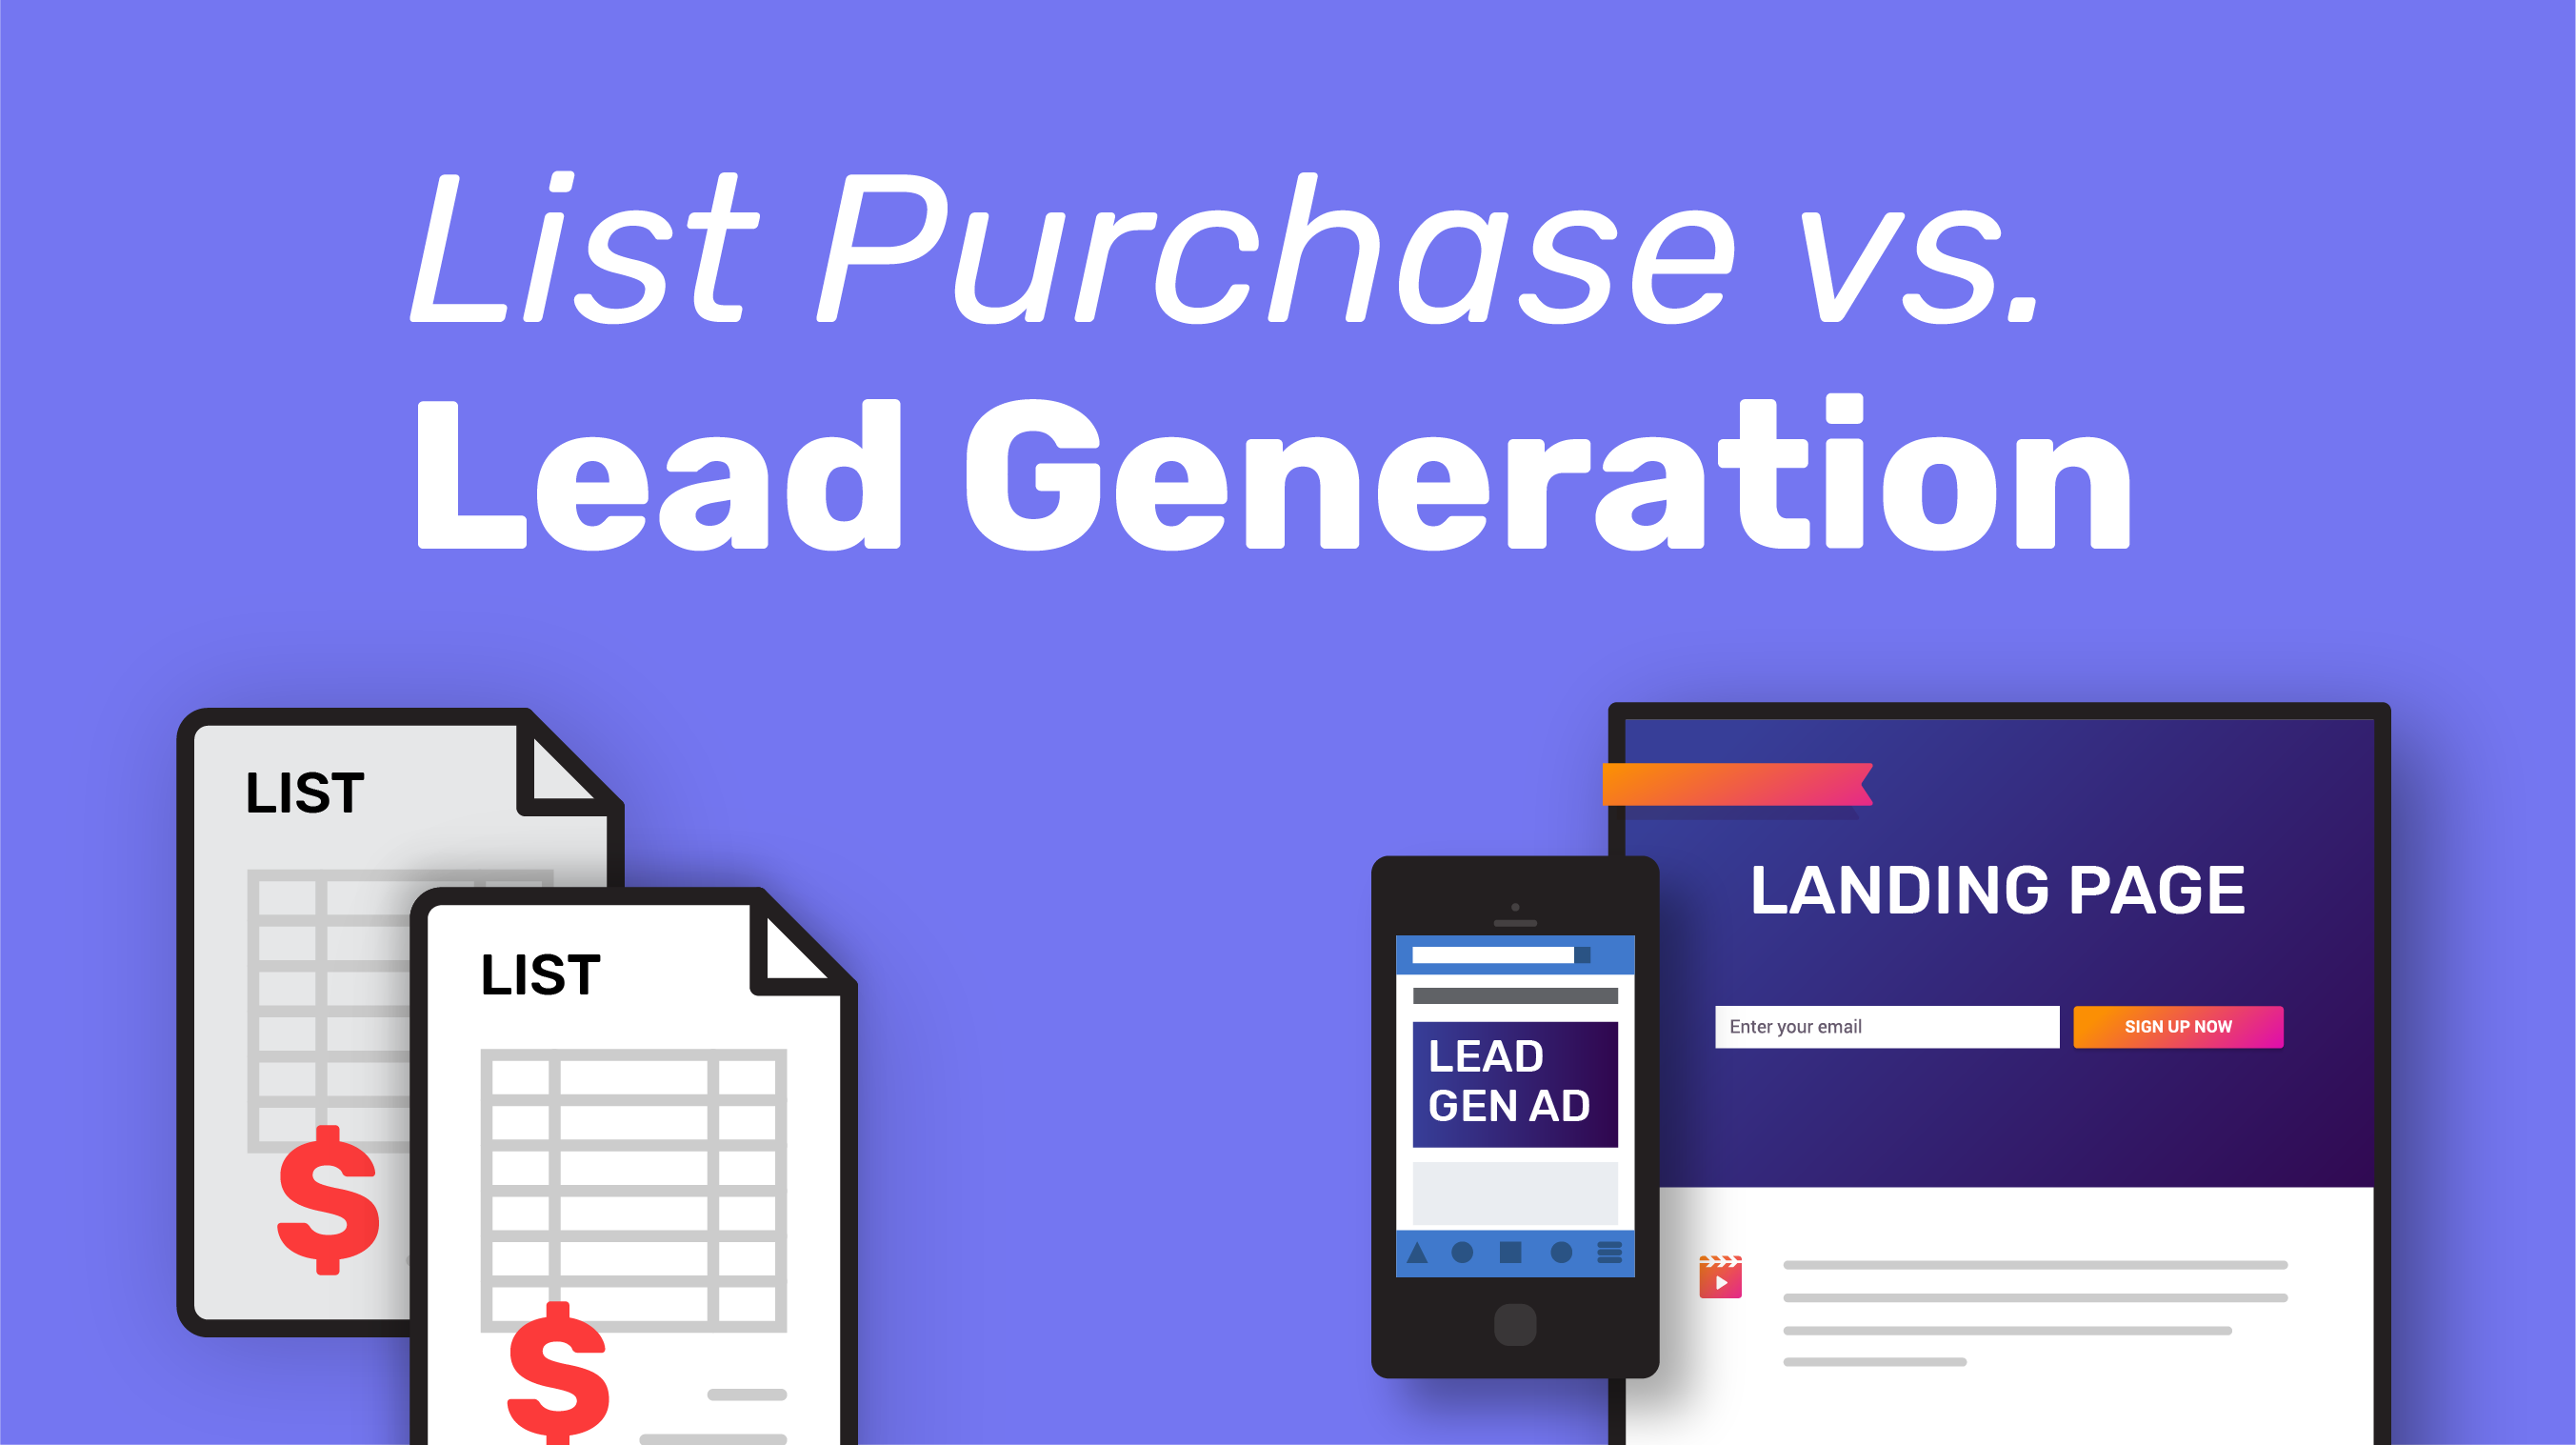 List Purchase vs. Lead Generation